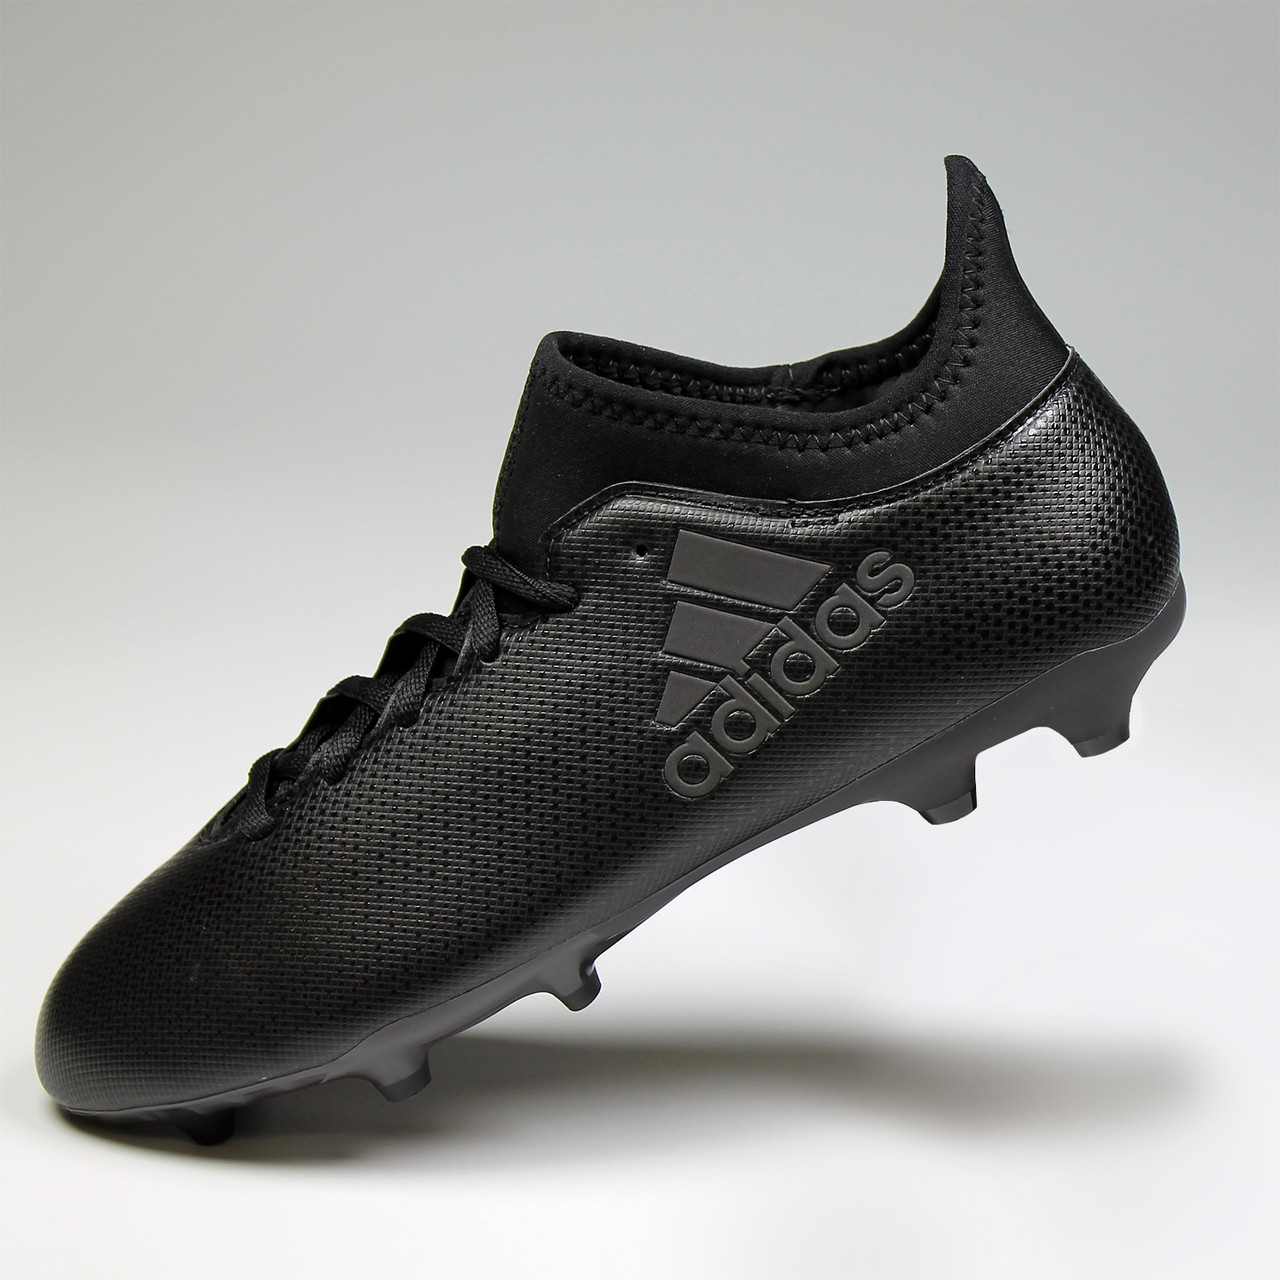 newest collection 2e288 ece15 Adidas X 17.3 FG Junior Soccer Cleats CP8992 - Black